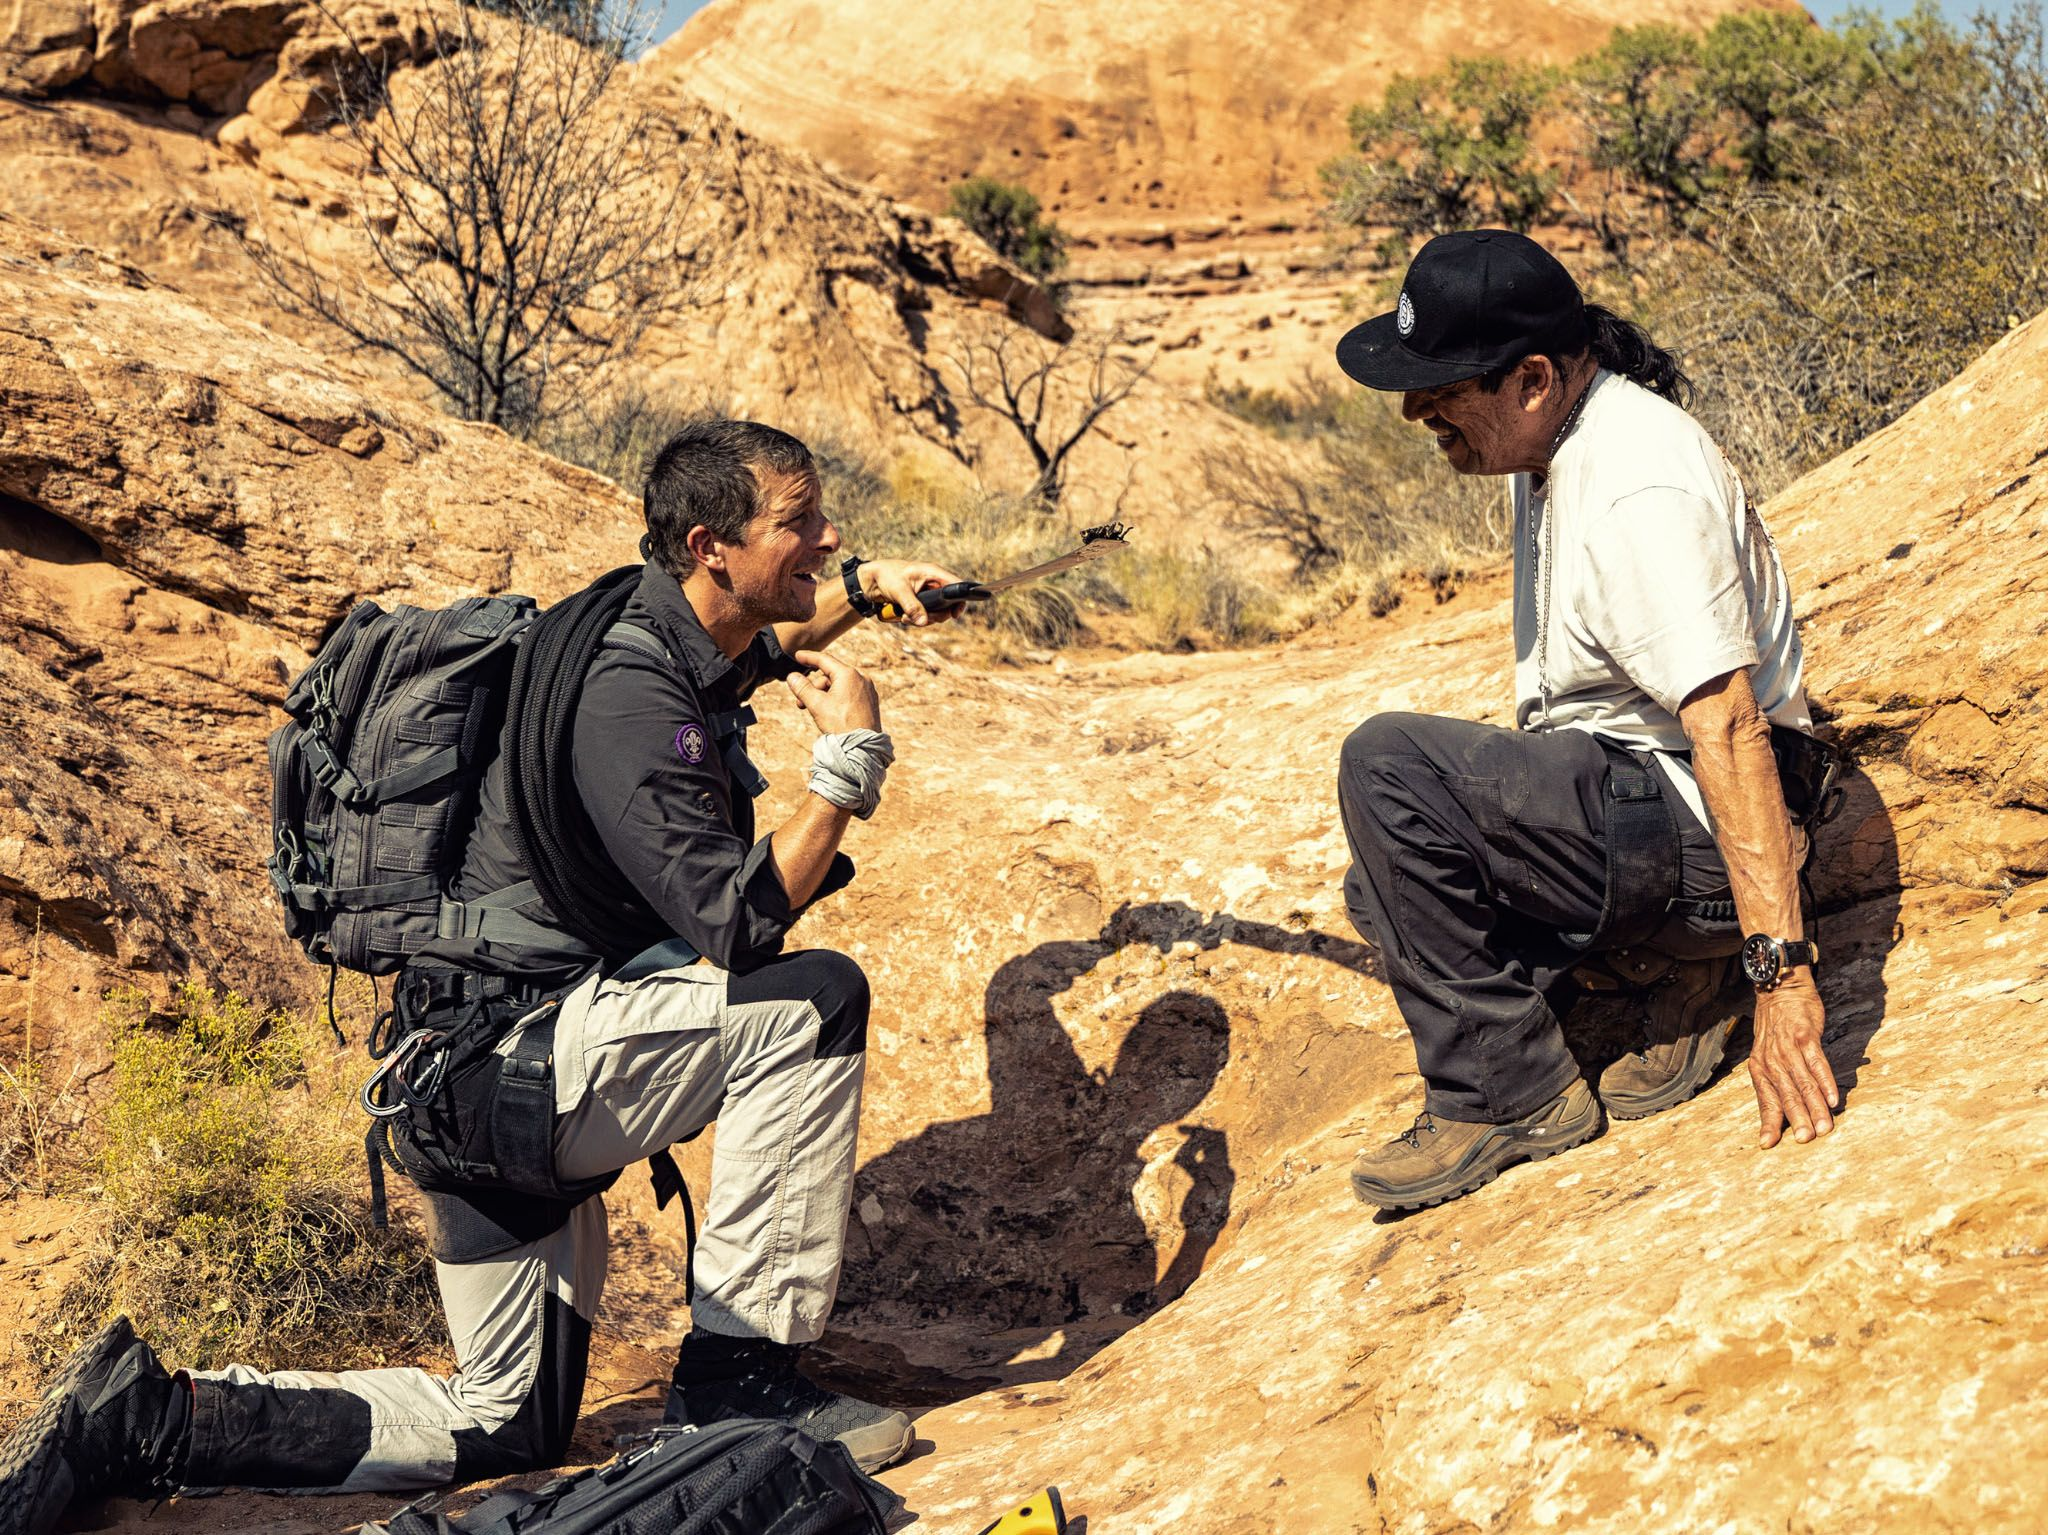 Bear Grylls shows Danny Trejo how to extract water. This image is from Running wild with Bear... [Photo of the day - April 2021]